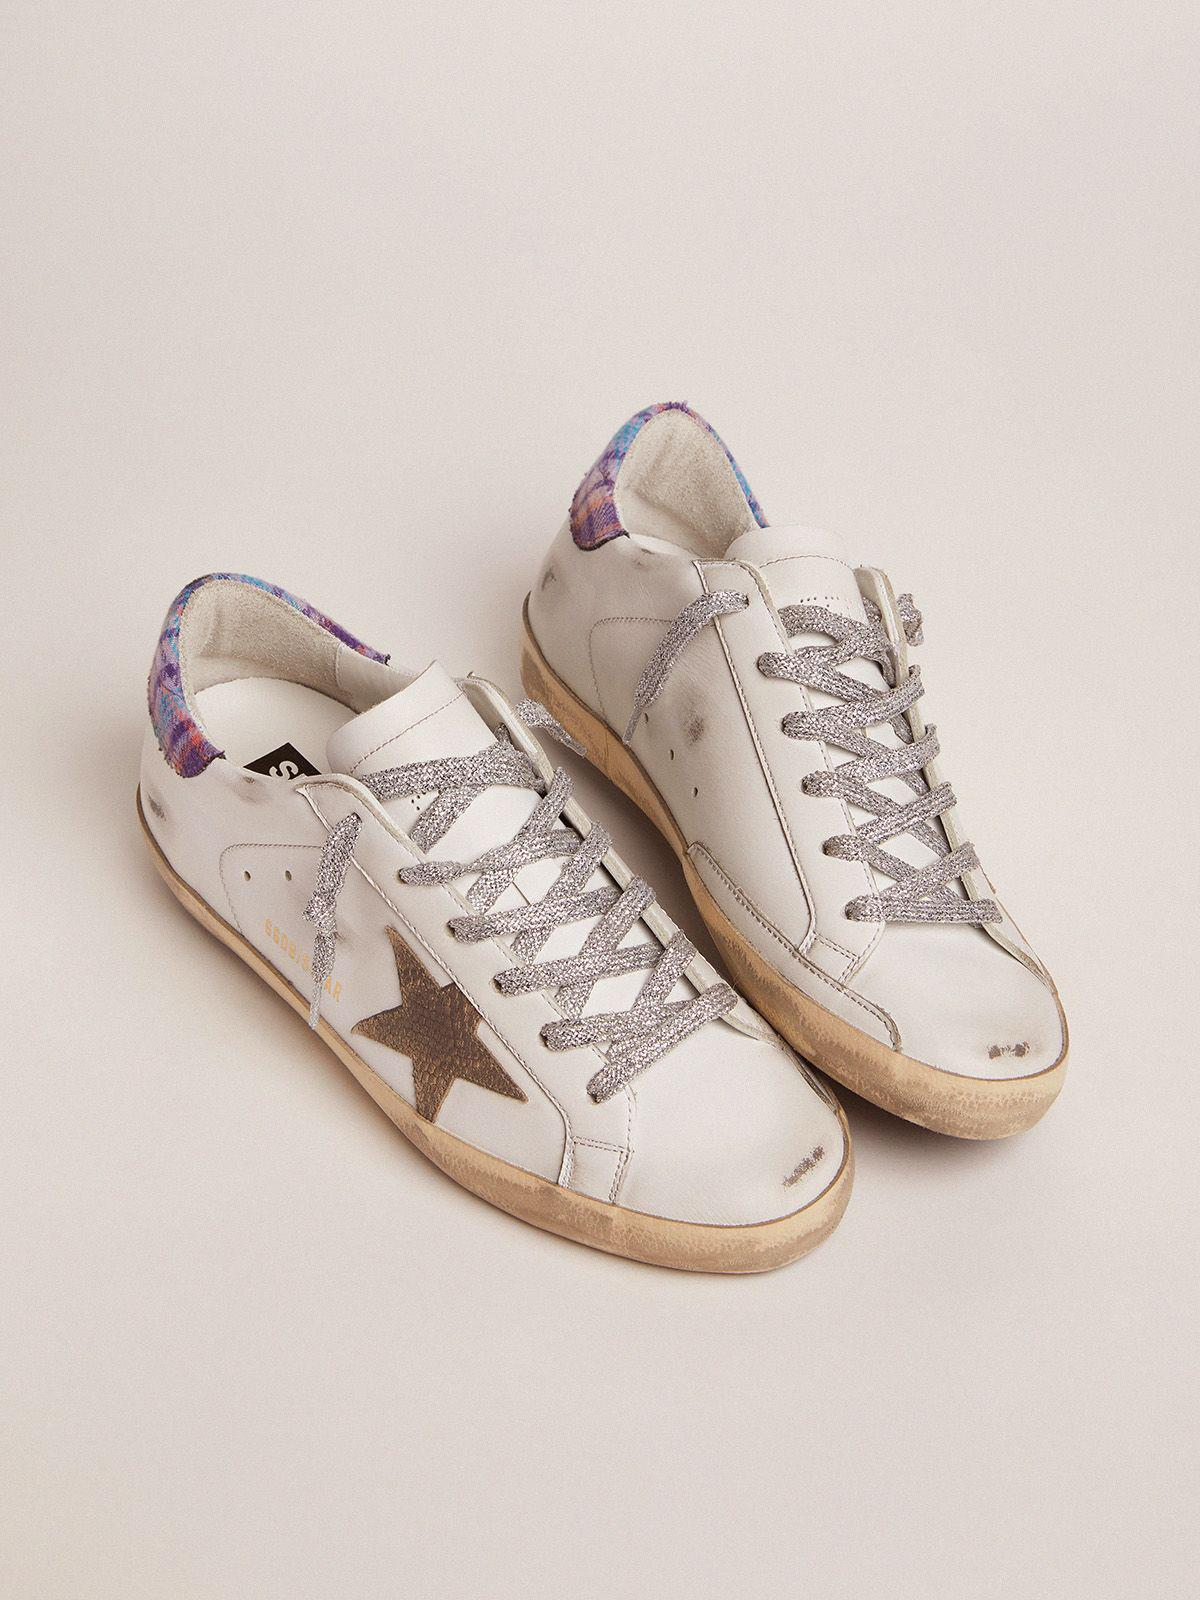 Super-Star sneakers with colored jacquard heel tab and snake-print suede star 1